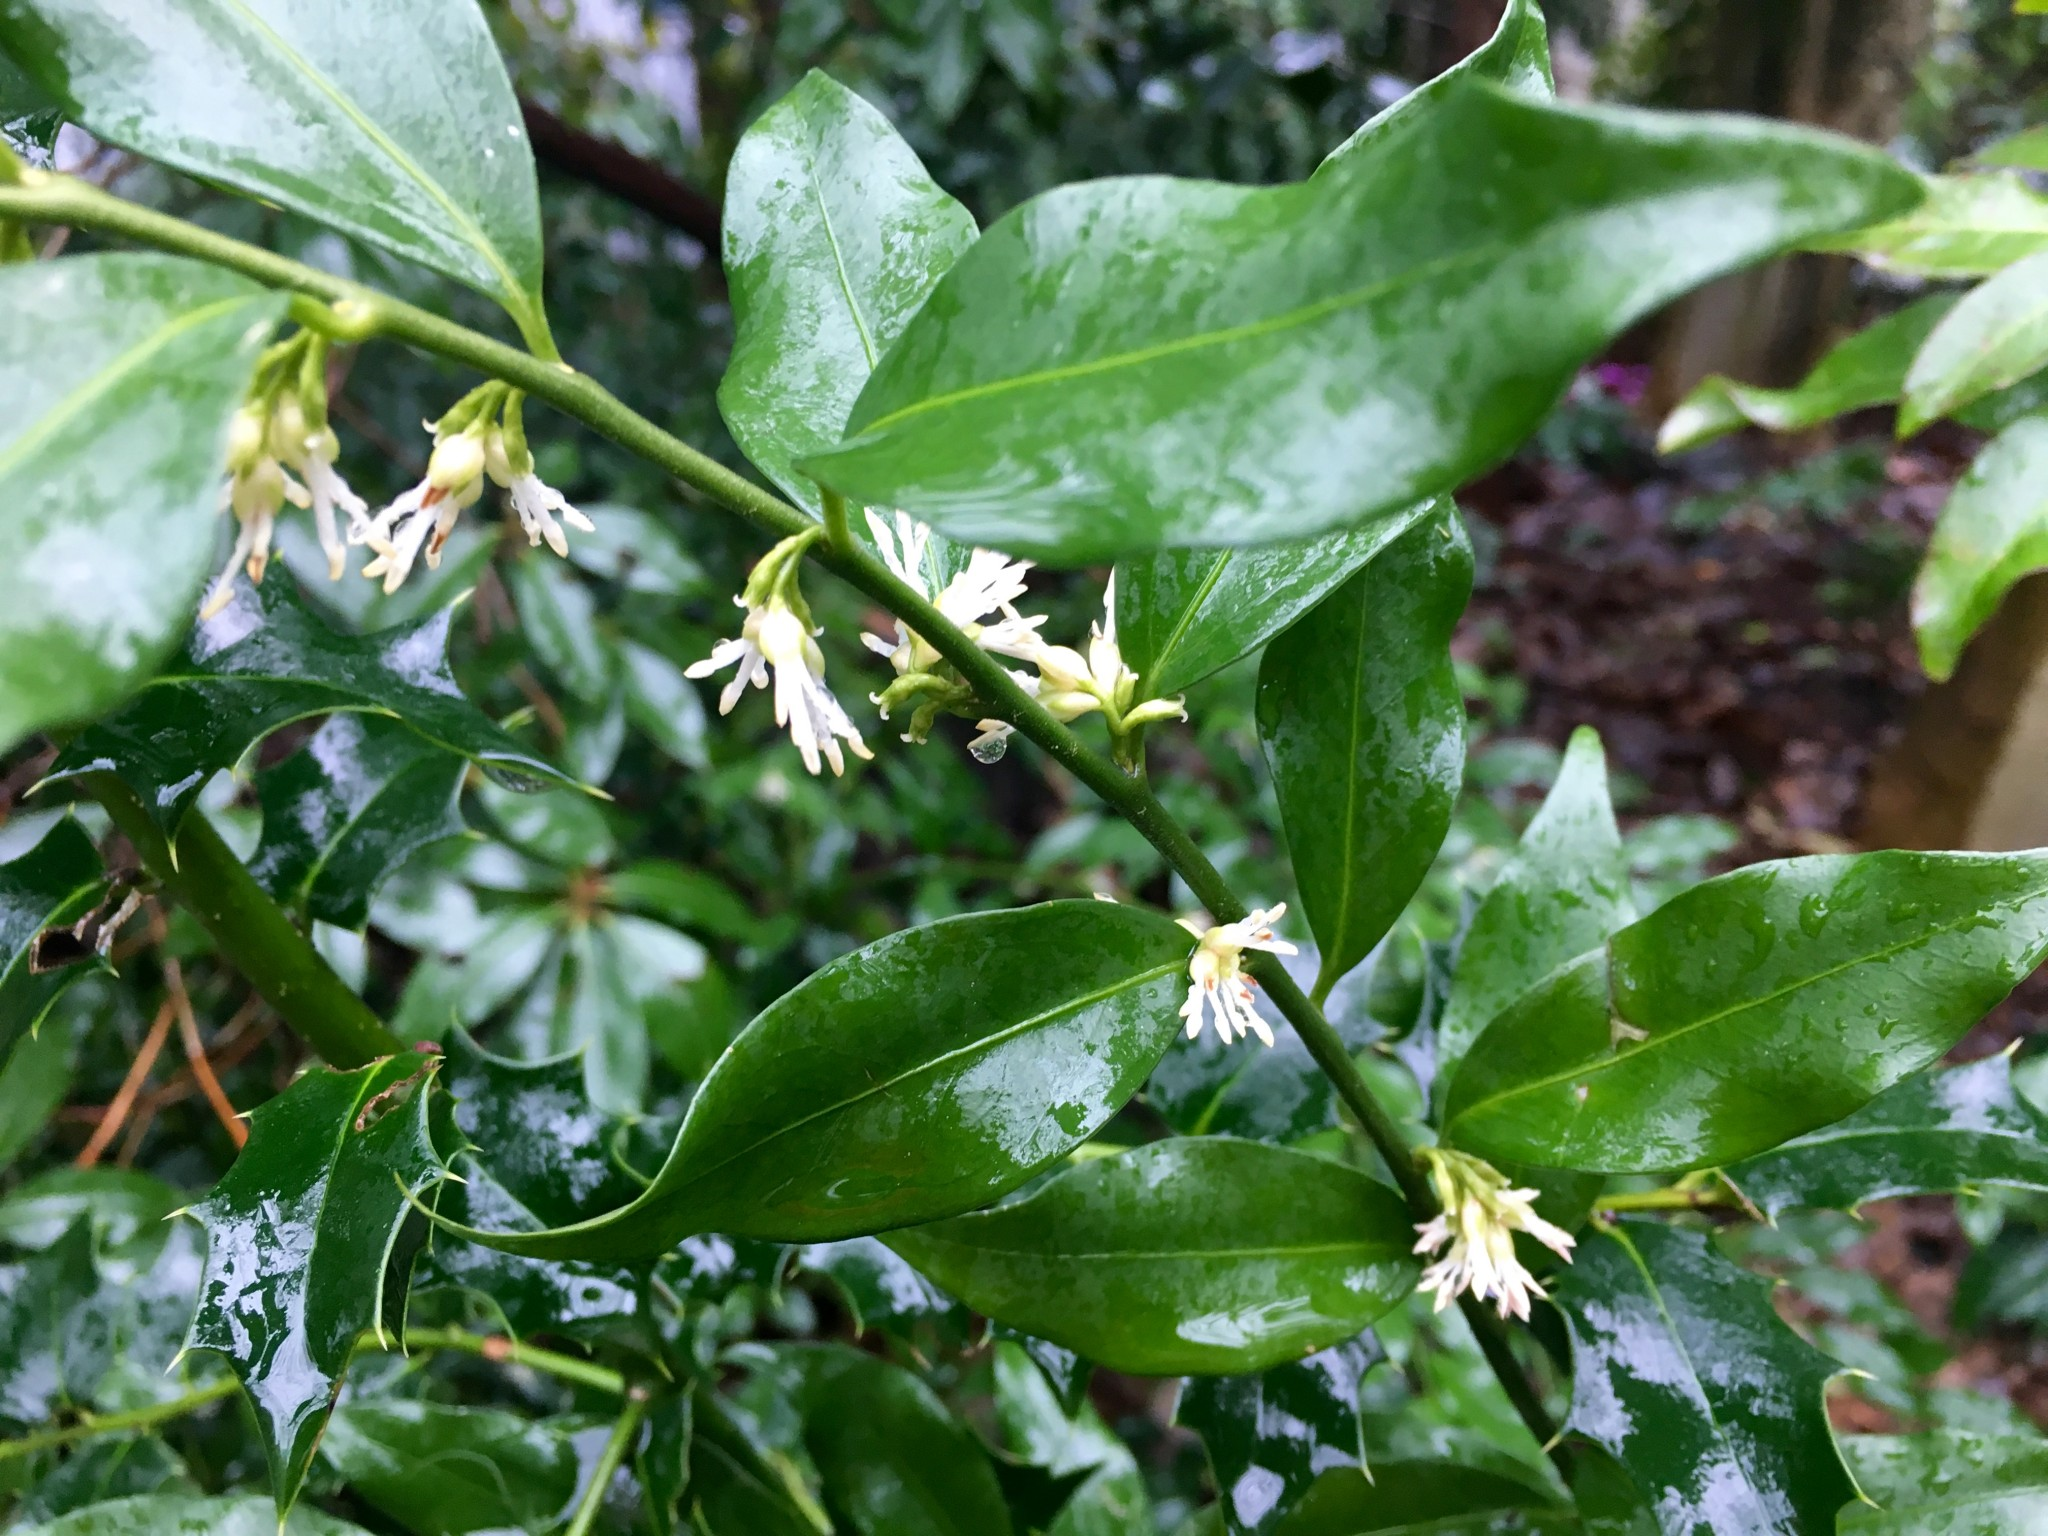 Sarcococca wins the bean in the fragrance department.